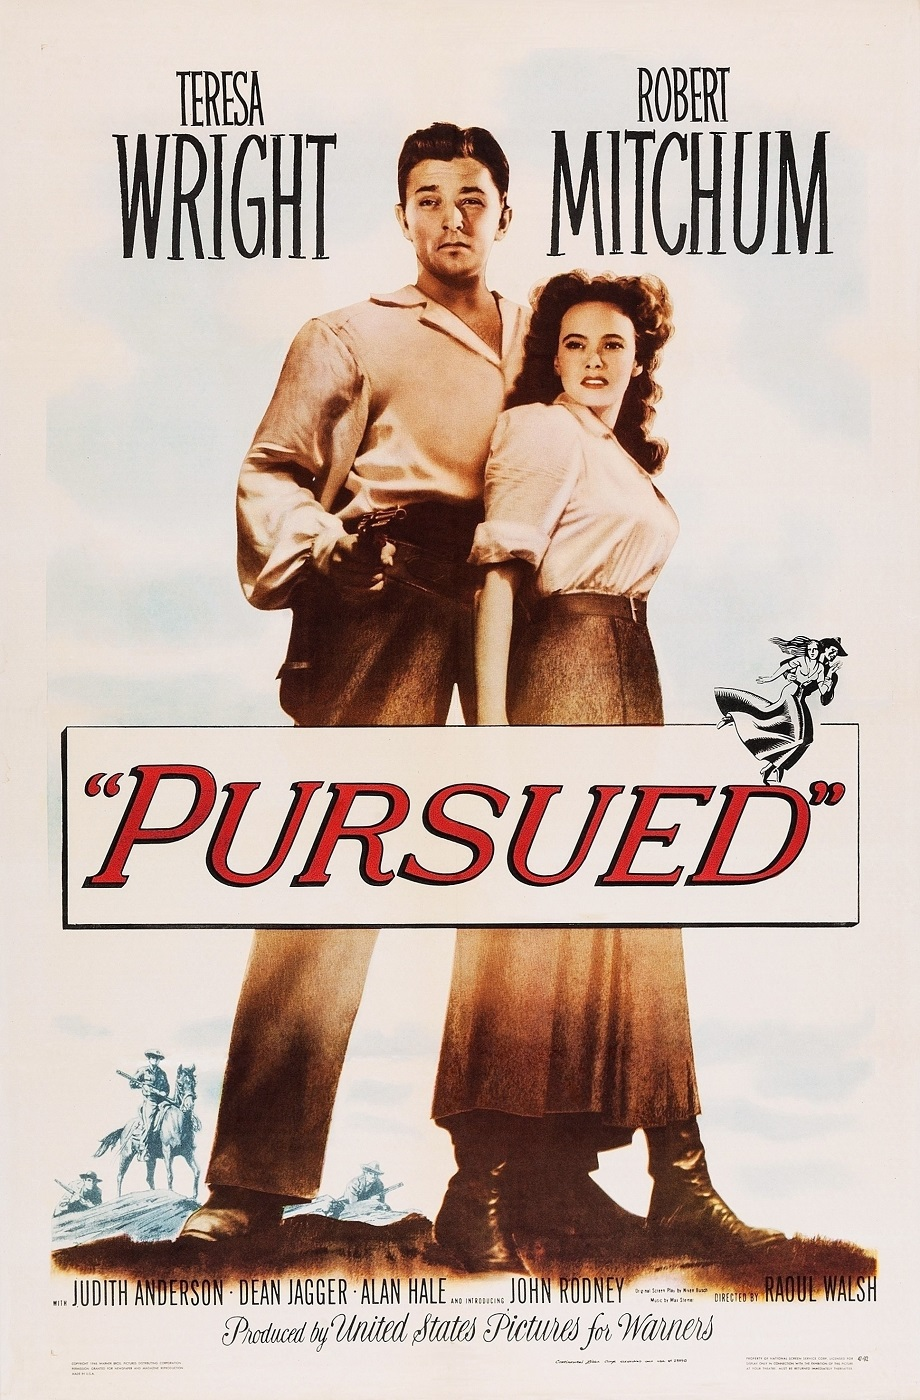 Robert Mitchum and Teresa Wright in Pursued (1947)